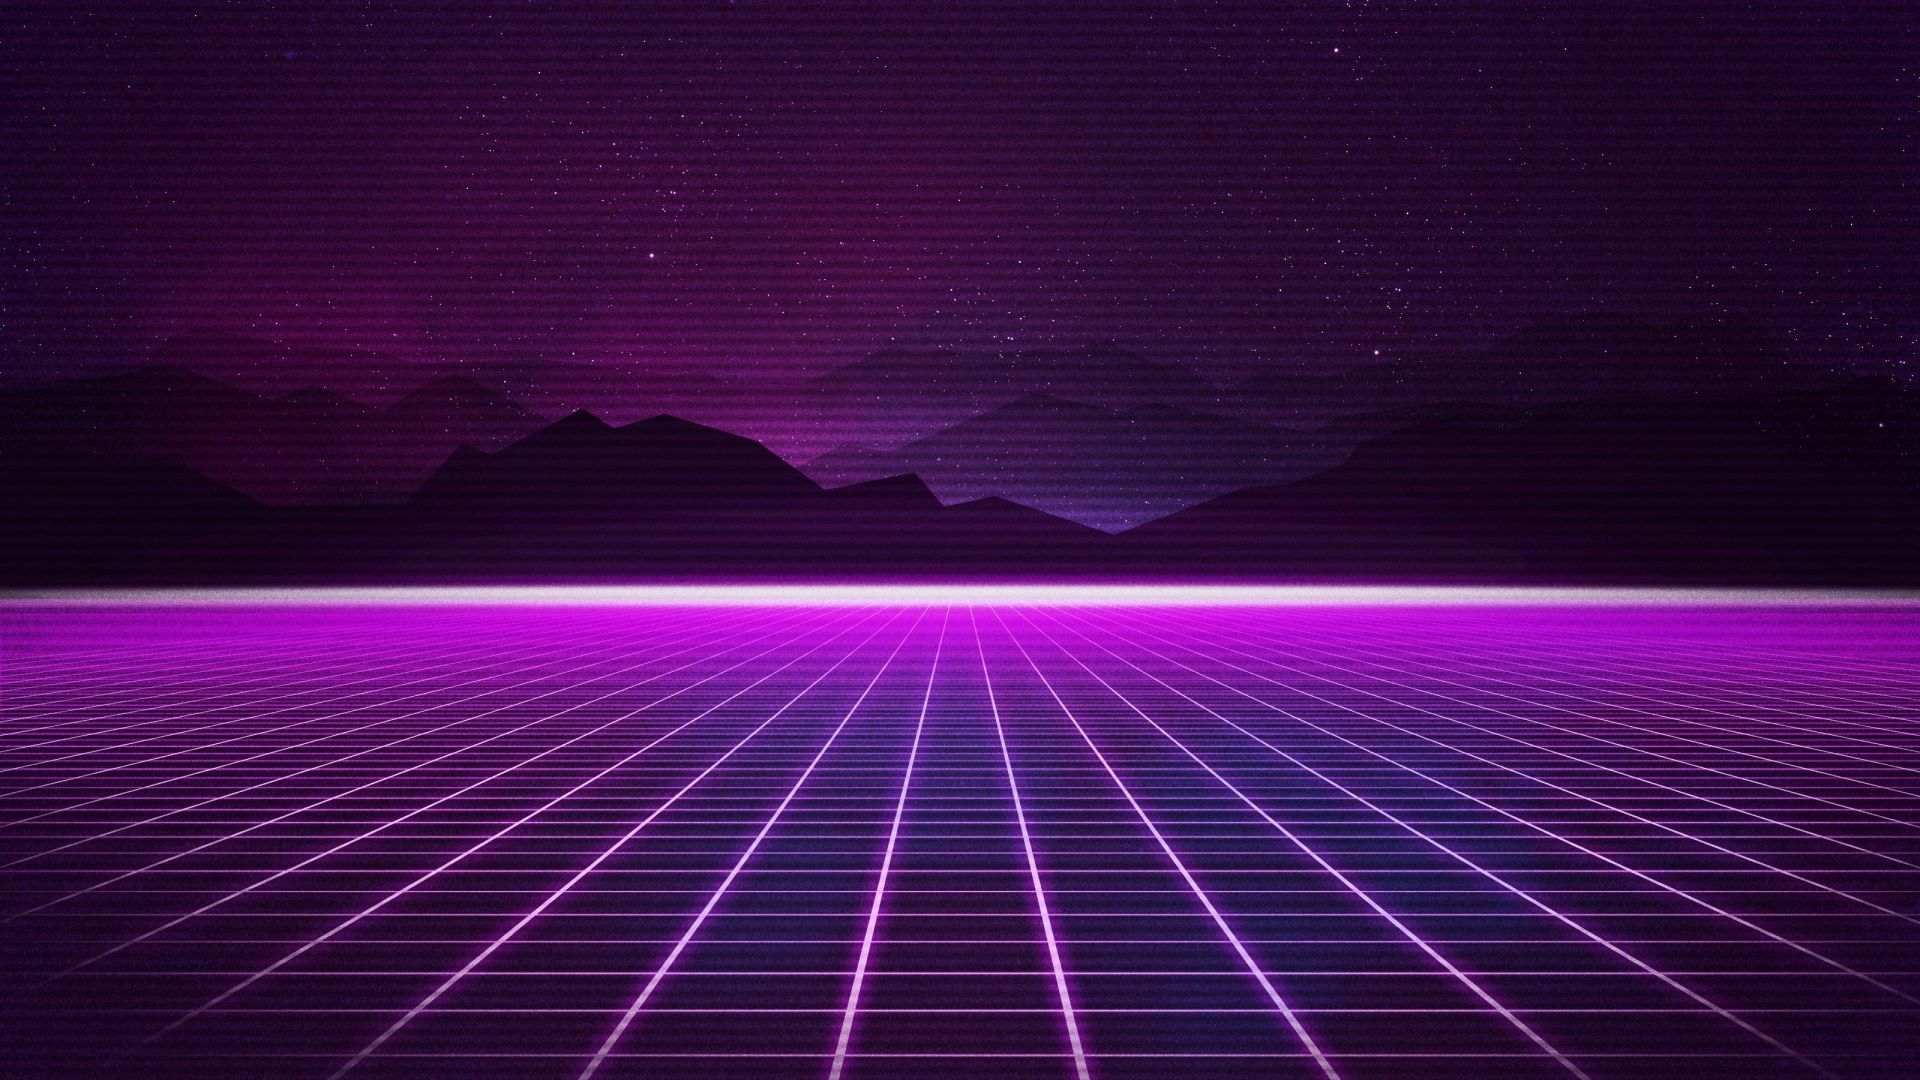 Pin By Mapis On Desktop Wallpaper In 2020 Vaporwave Wallpaper Synthwave Art Aesthetic Wallpapers